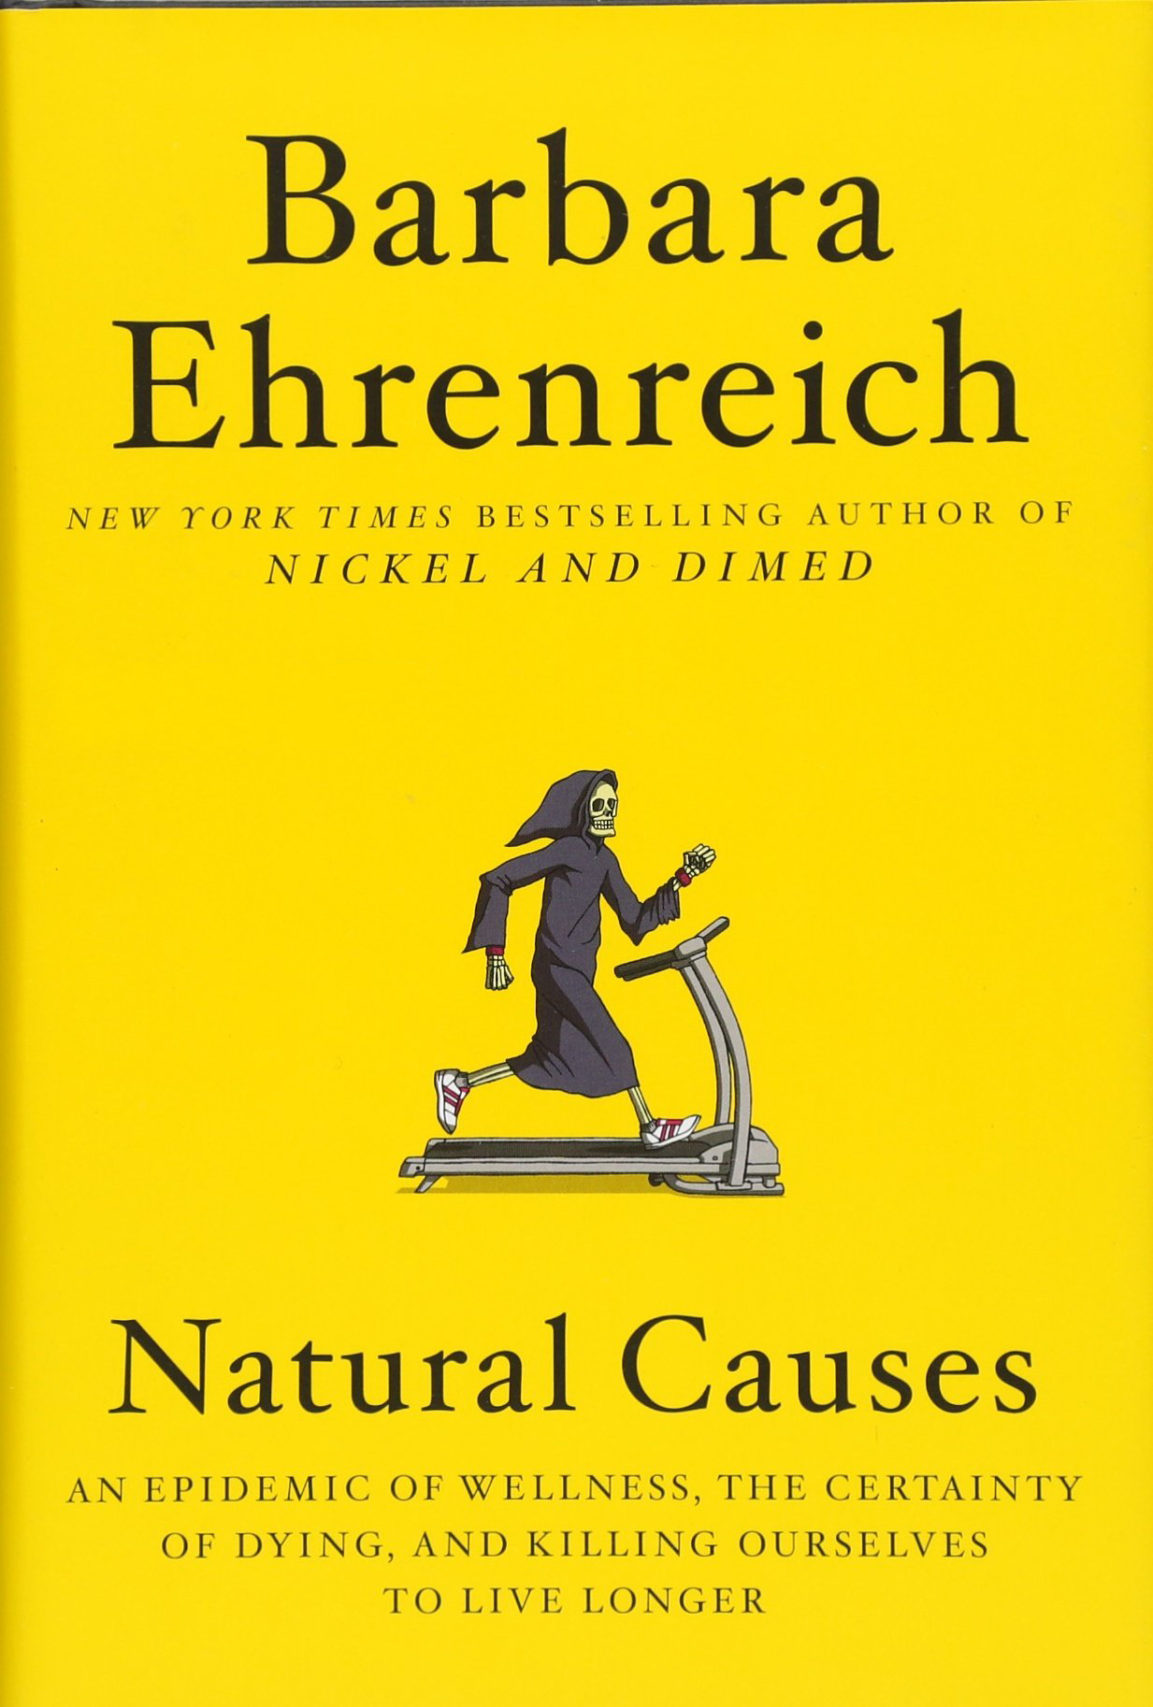 <em>Natural Causes: An Epidemic of Wellness, the Certainty of Dying, and Killing Ourselves to Live Longer</em> by Barbara Ehrenreich